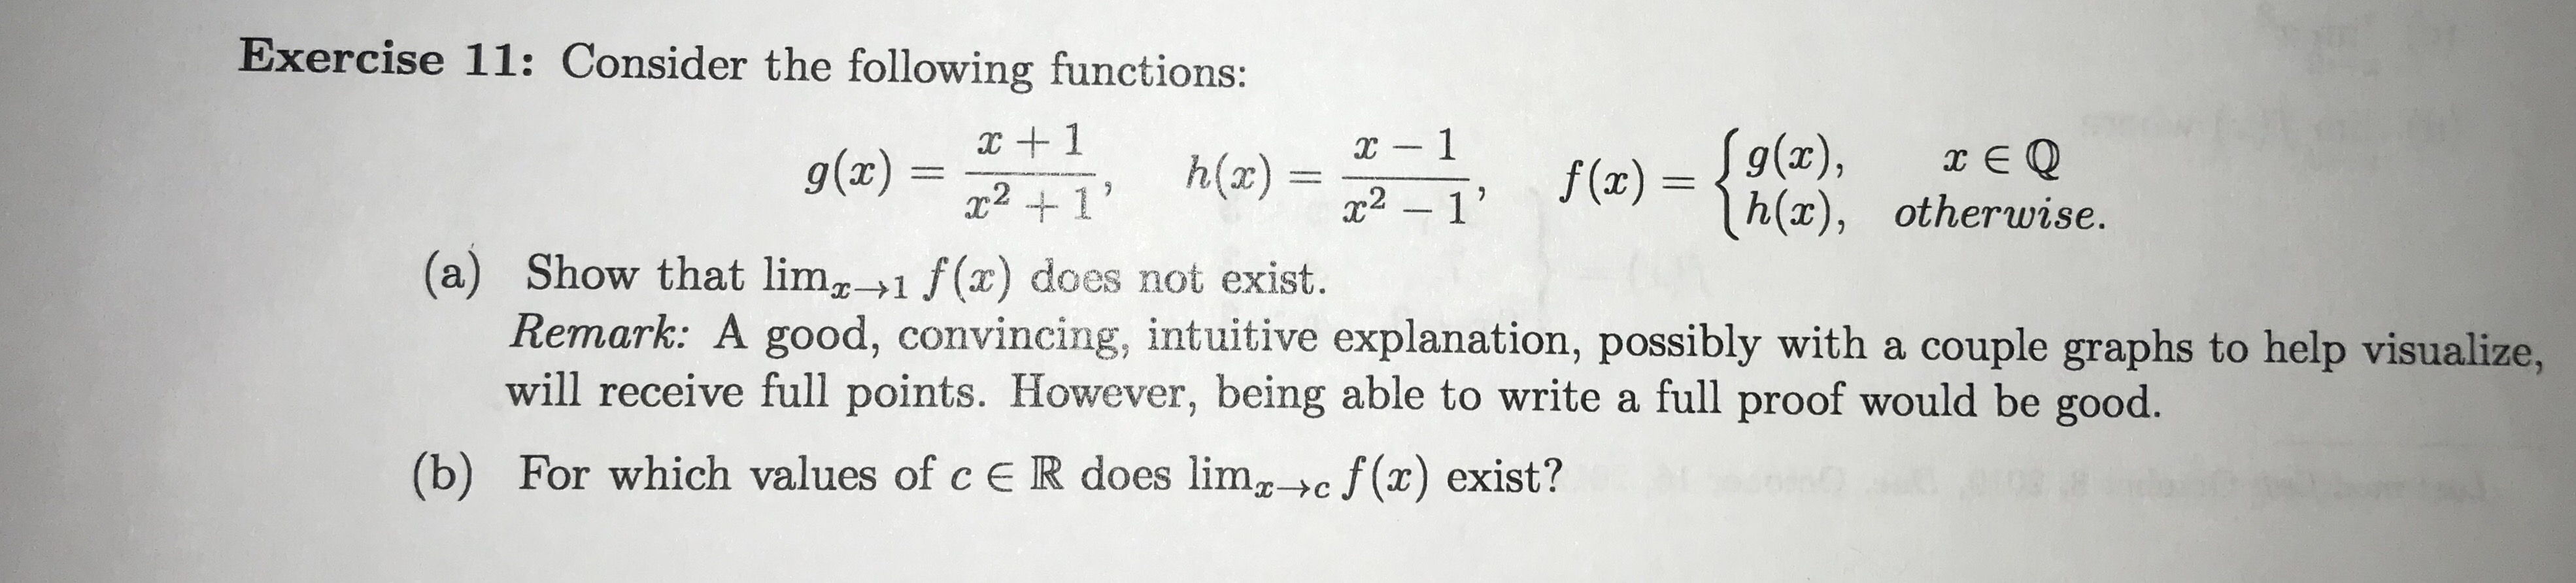 Exercise 11: Consider the following functions: x -1 2 1 1 S9(x), h(x), otherwise. g(x) h(x) = f (x) x21 (a) Show that limg1 f(x) does not exist. Remark: A good, convincing, intuitive explanation, possibly with a couple graphs to help visualize, will receive full points. However, being able to write a full proof would be good. (b) For which values of c ER does lim>c f(x) exist?